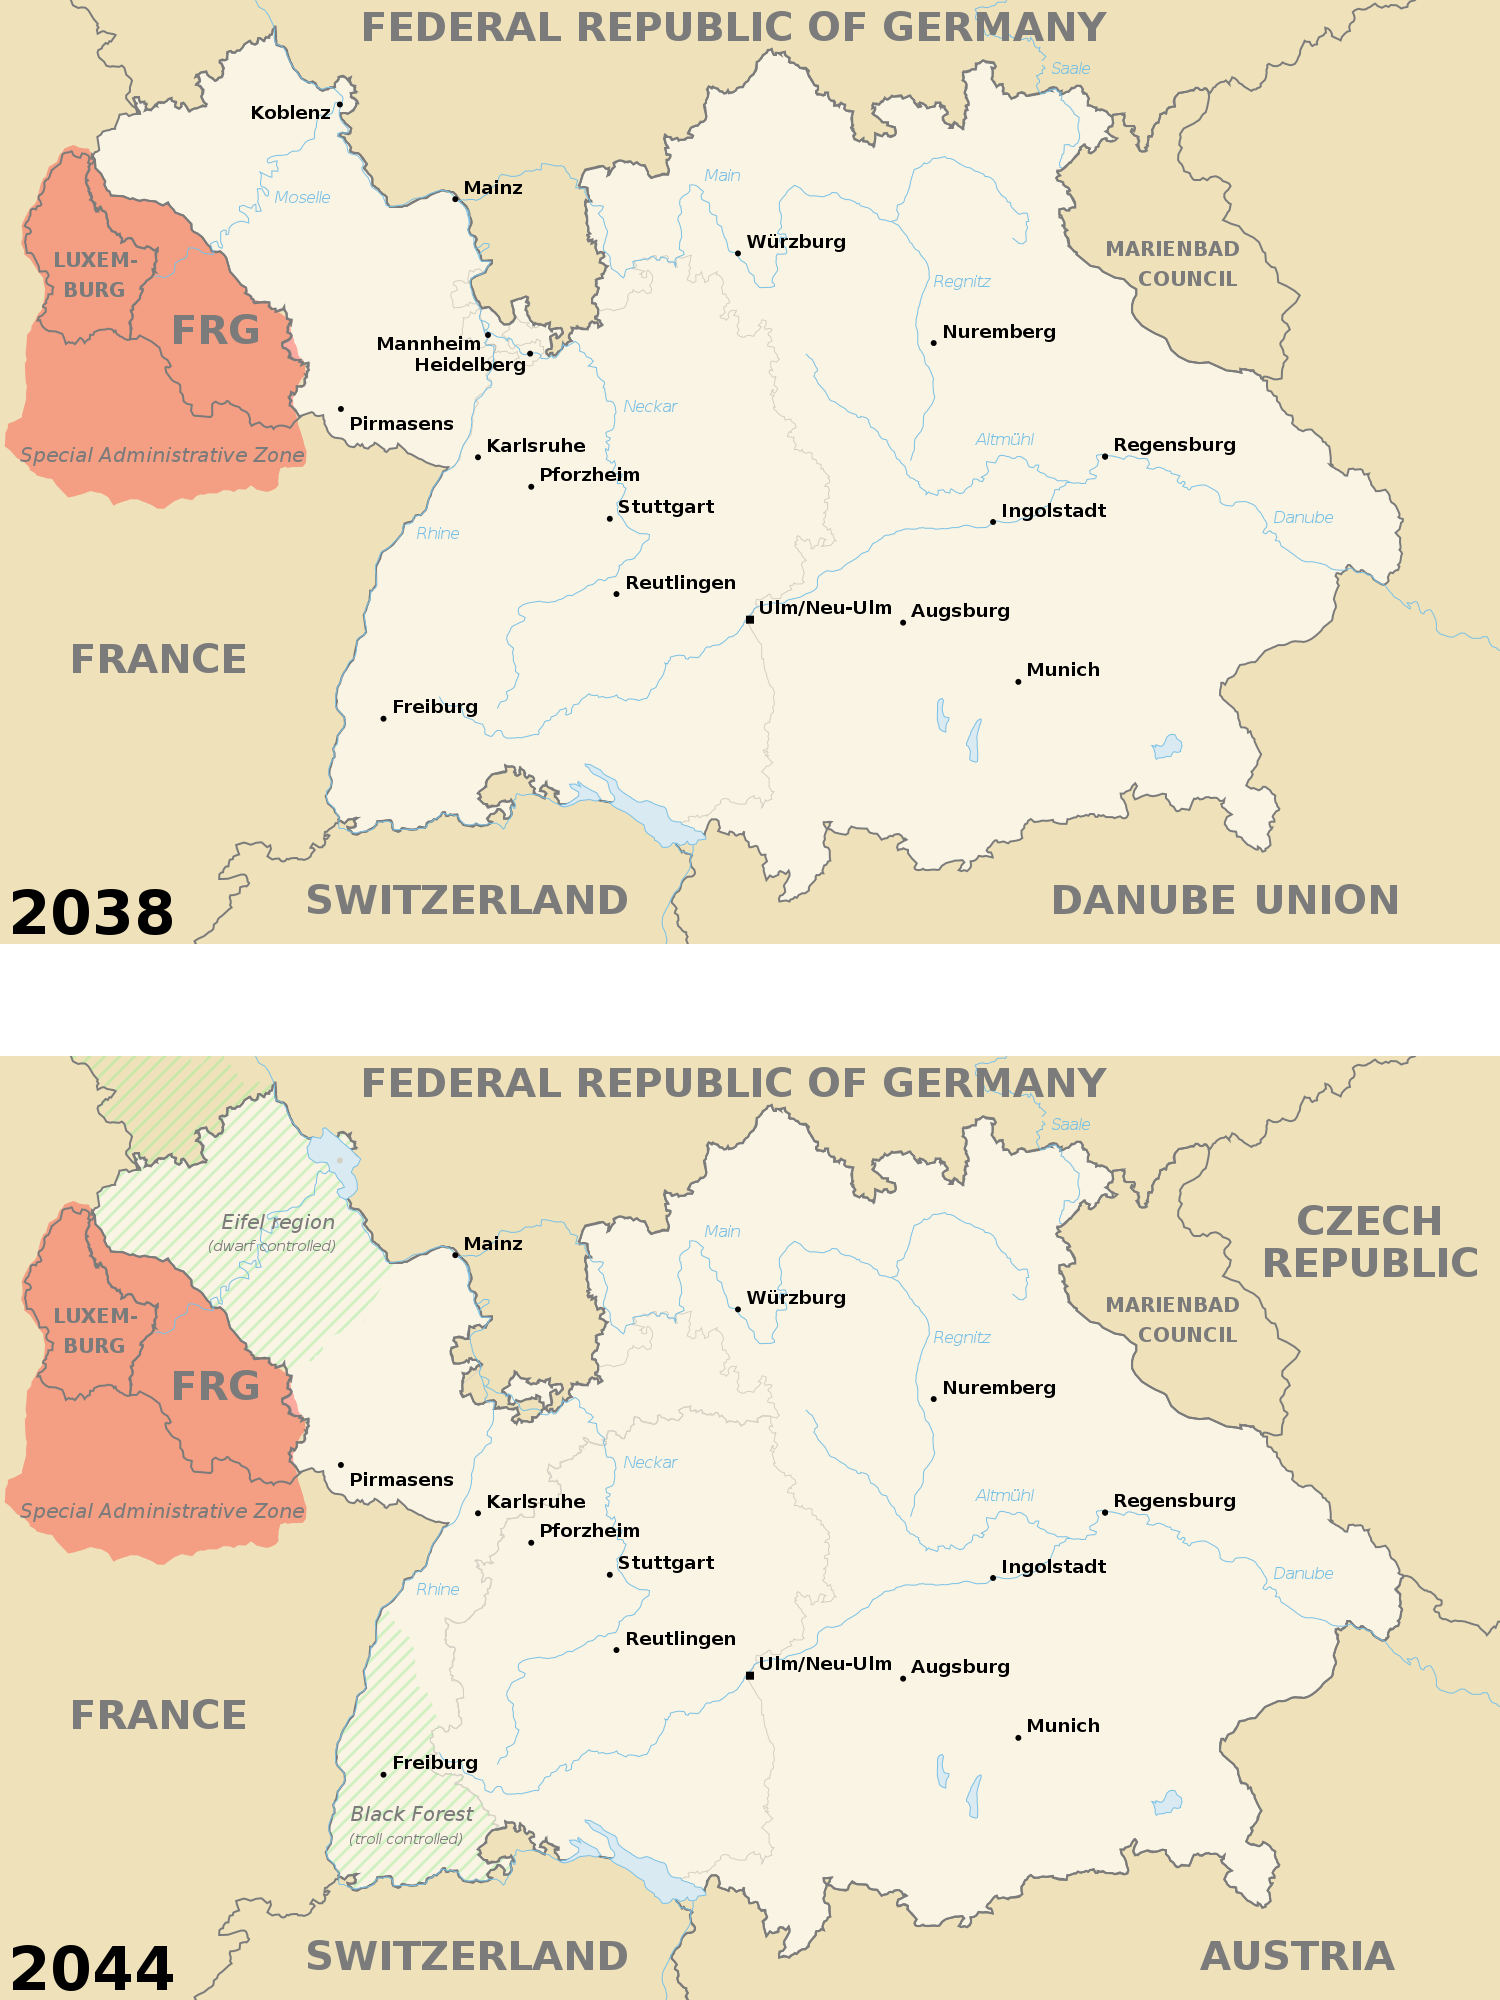 south german league 2038 and 2044